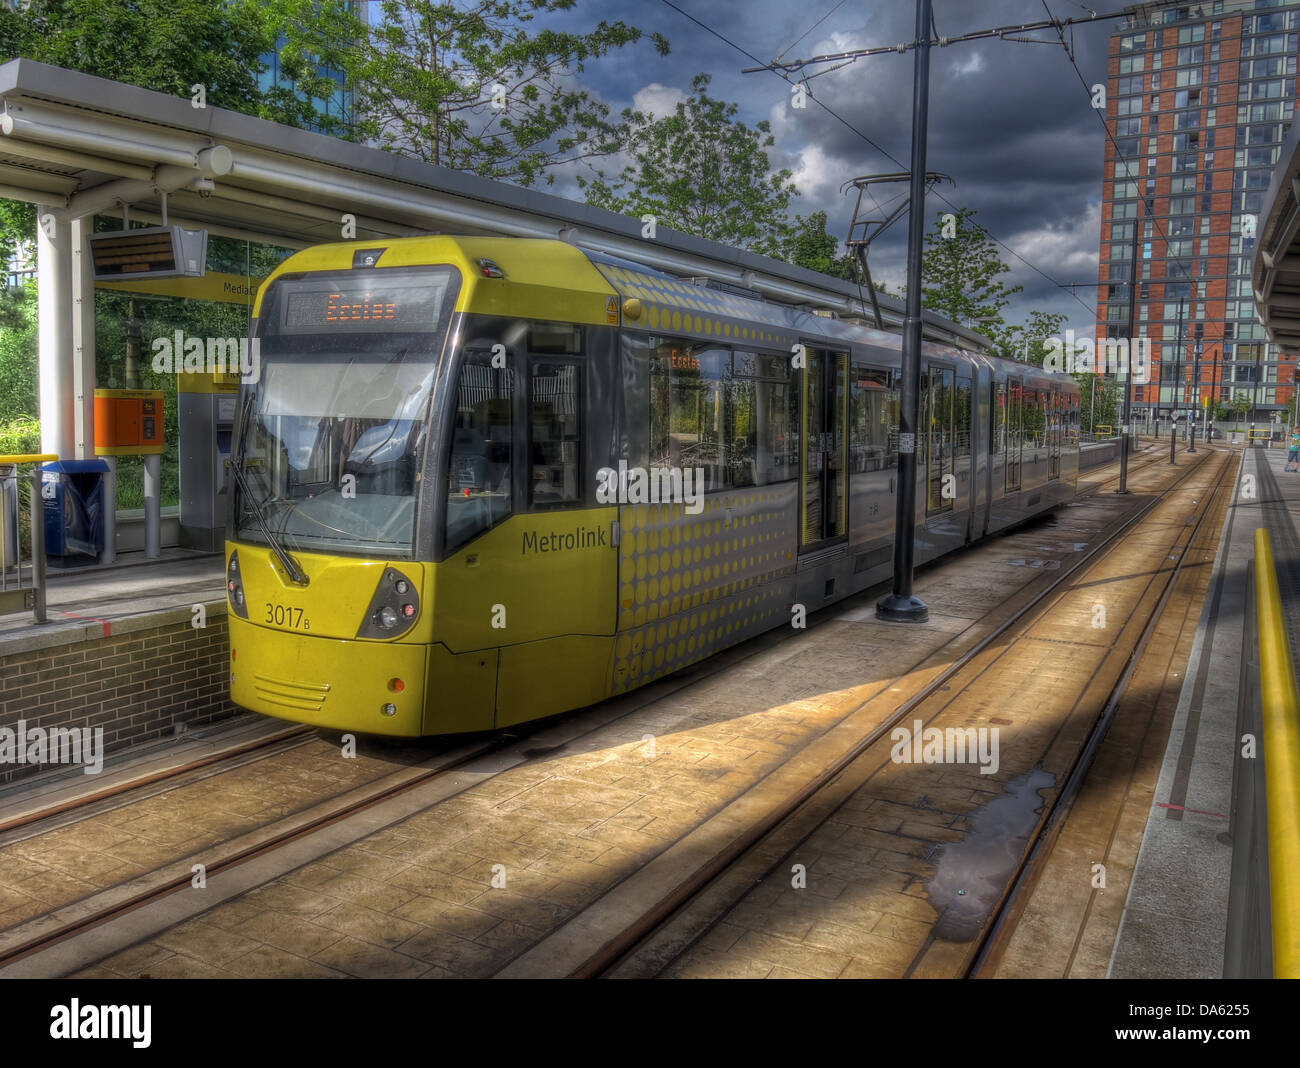 Salford,Quays,Manchester,England,UK,bound,for,eccles,tramlines,lines,line,extension,light,rail,transport,system,RAPT,Group,TfGM,for,greater,on-street,tramway,on,street,rapid,transit,Bombardier,Flexity,Swift,M5000s,LRVs,light,rail,vehicles,vehicle,key,strategy,of,planners,railway,arriving,departing,gotonysmith,Mancester,Buy Pictures of,Buy Images Of